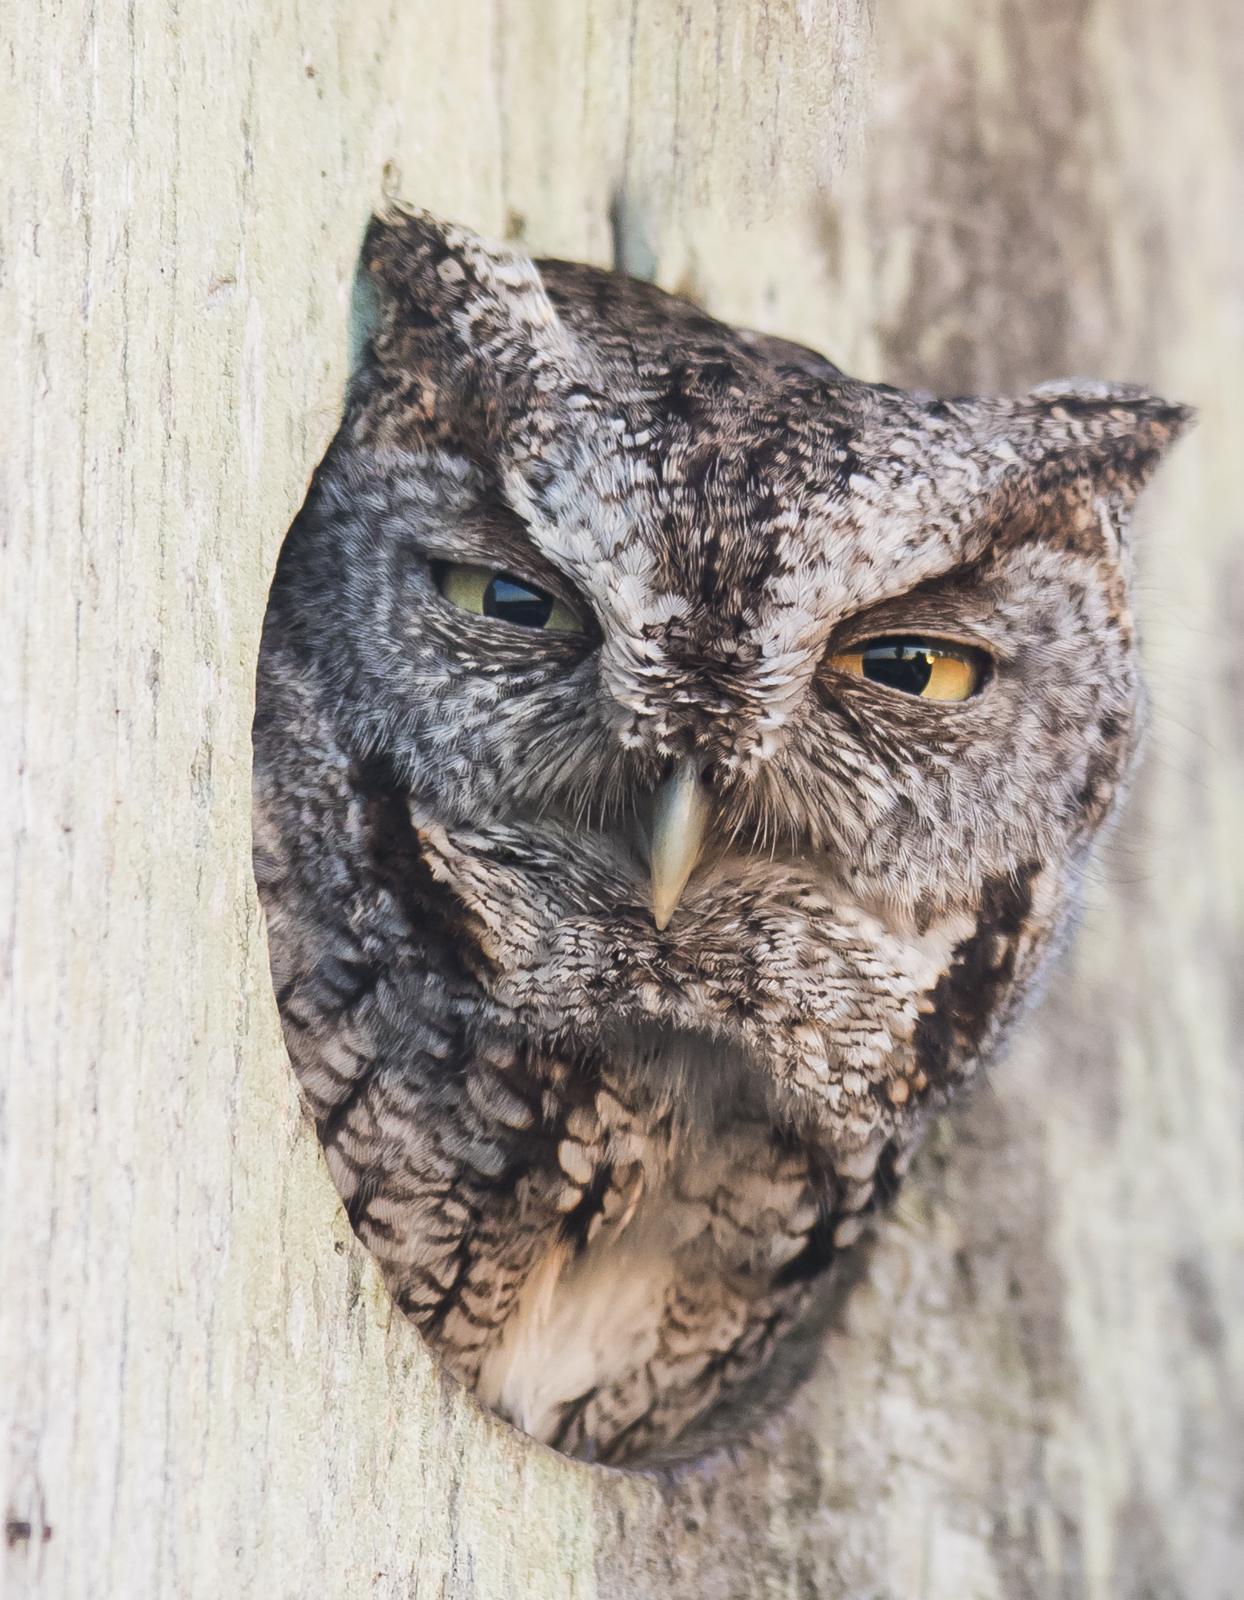 Screech owl in wood duck box close up 1